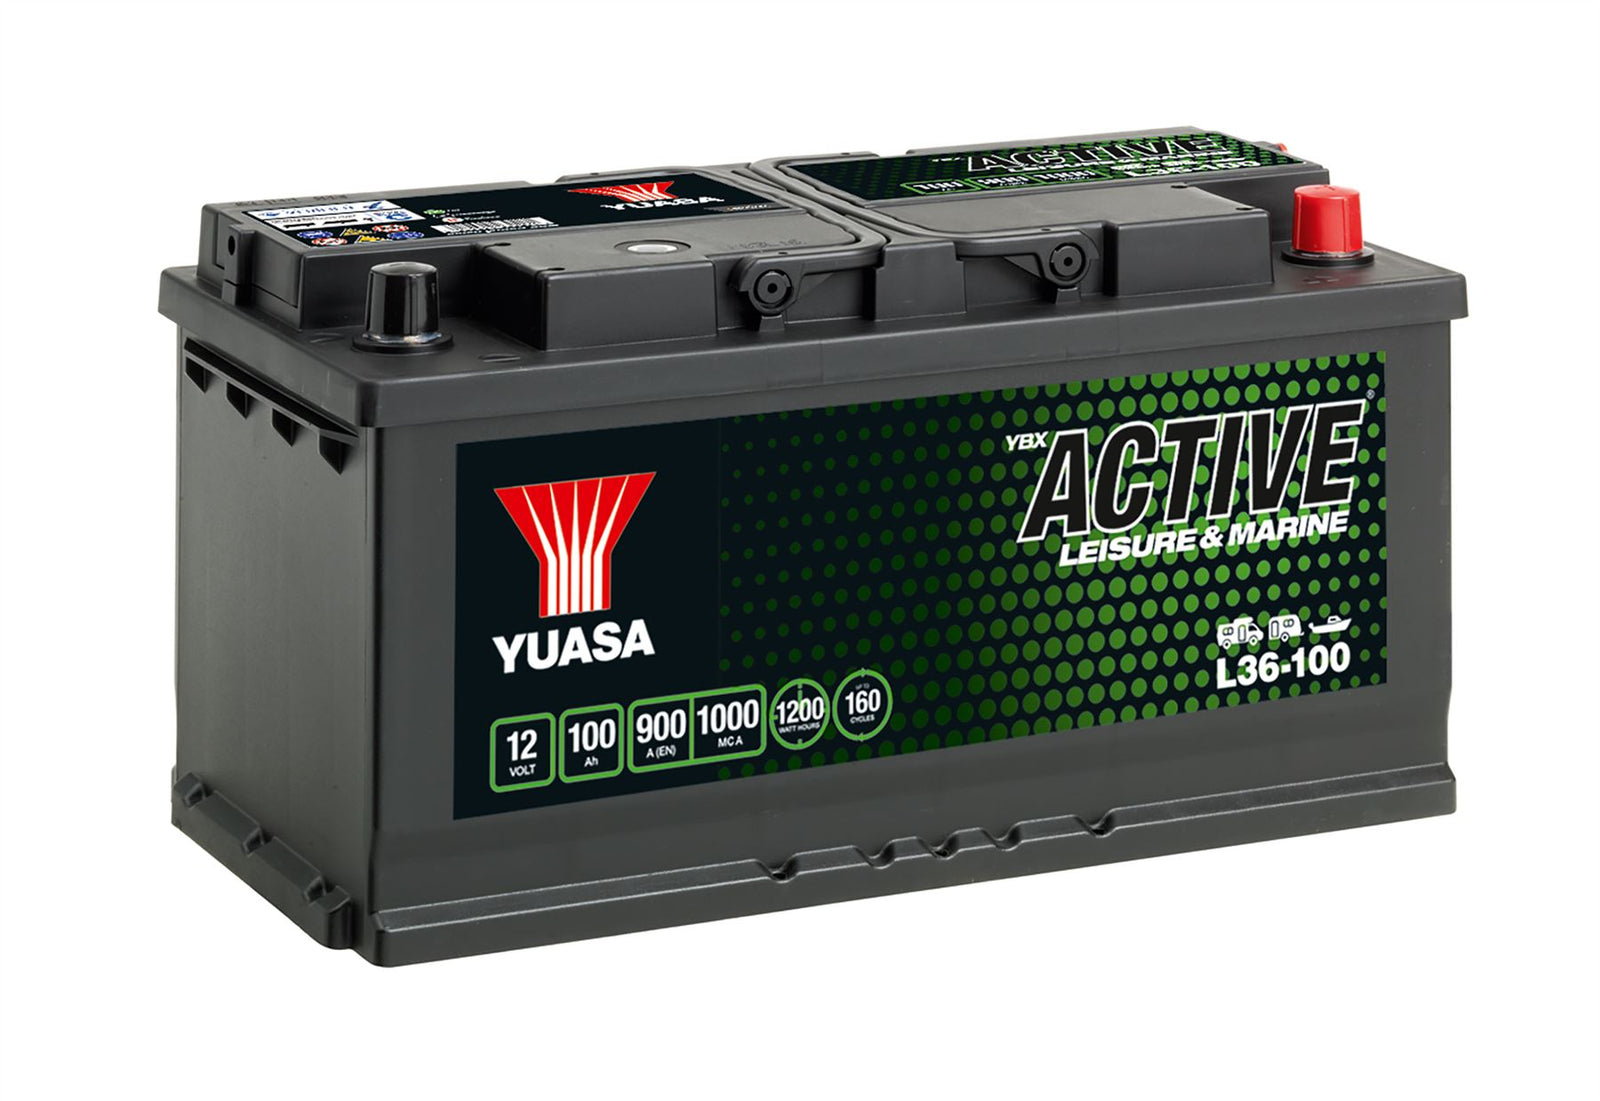 Yuasa L36-100 Active Leisure & Marine Battery